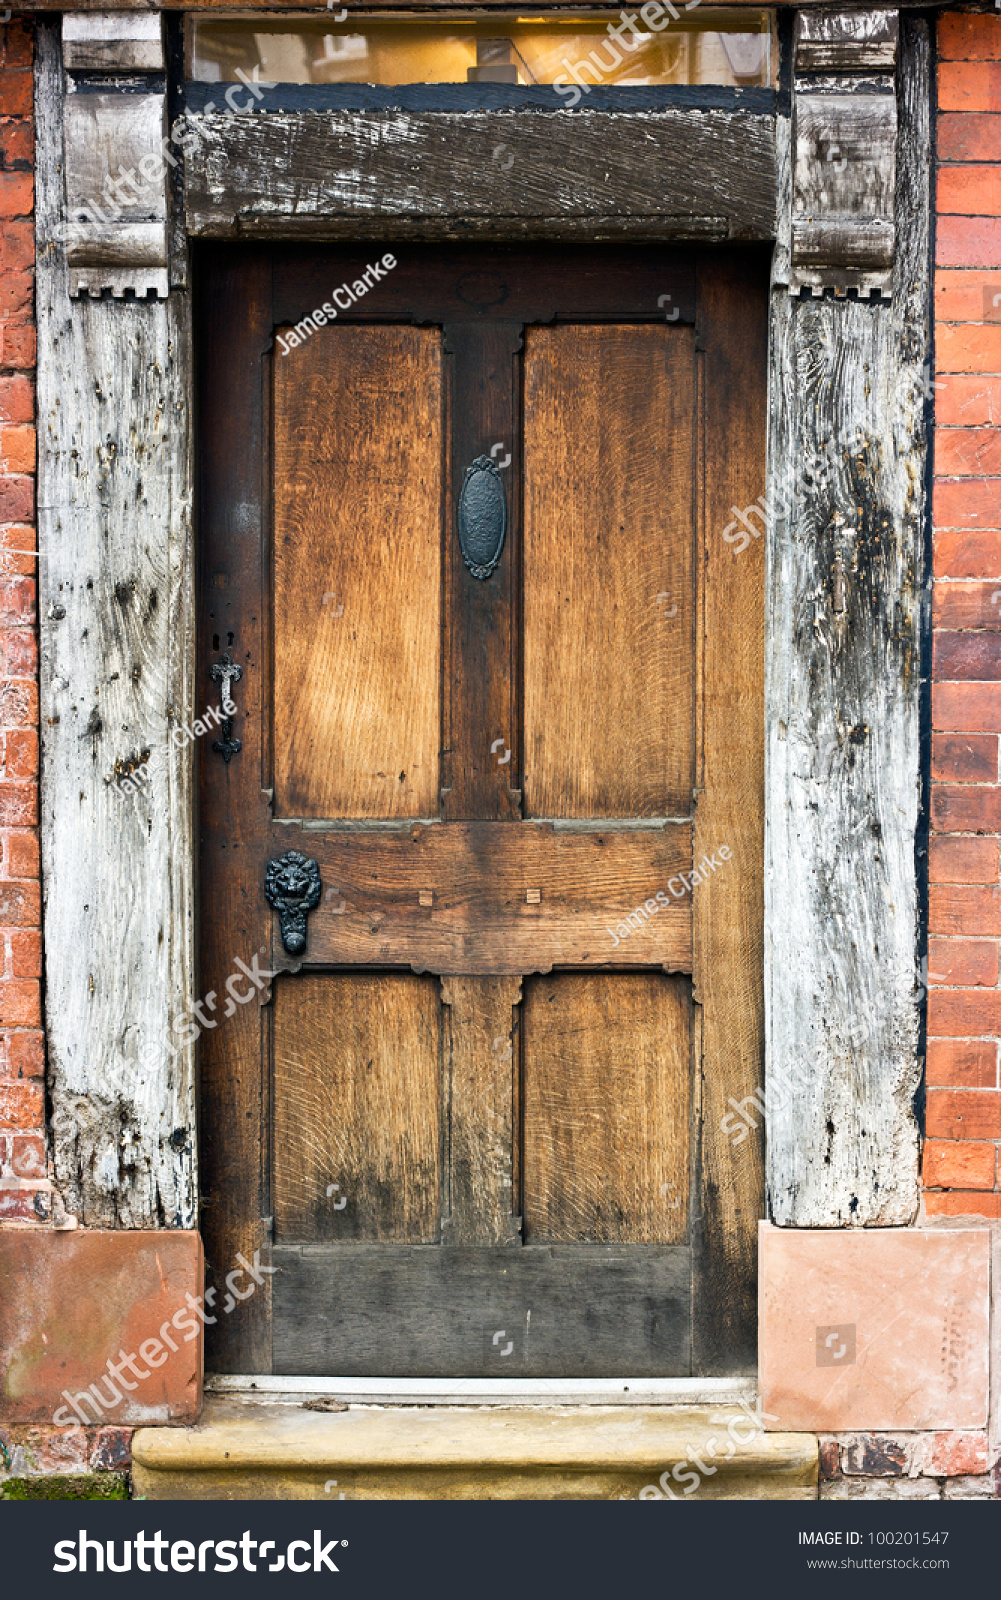 Old Oak Door Frame Window Tudor Stock Photo Edit Now 100201547